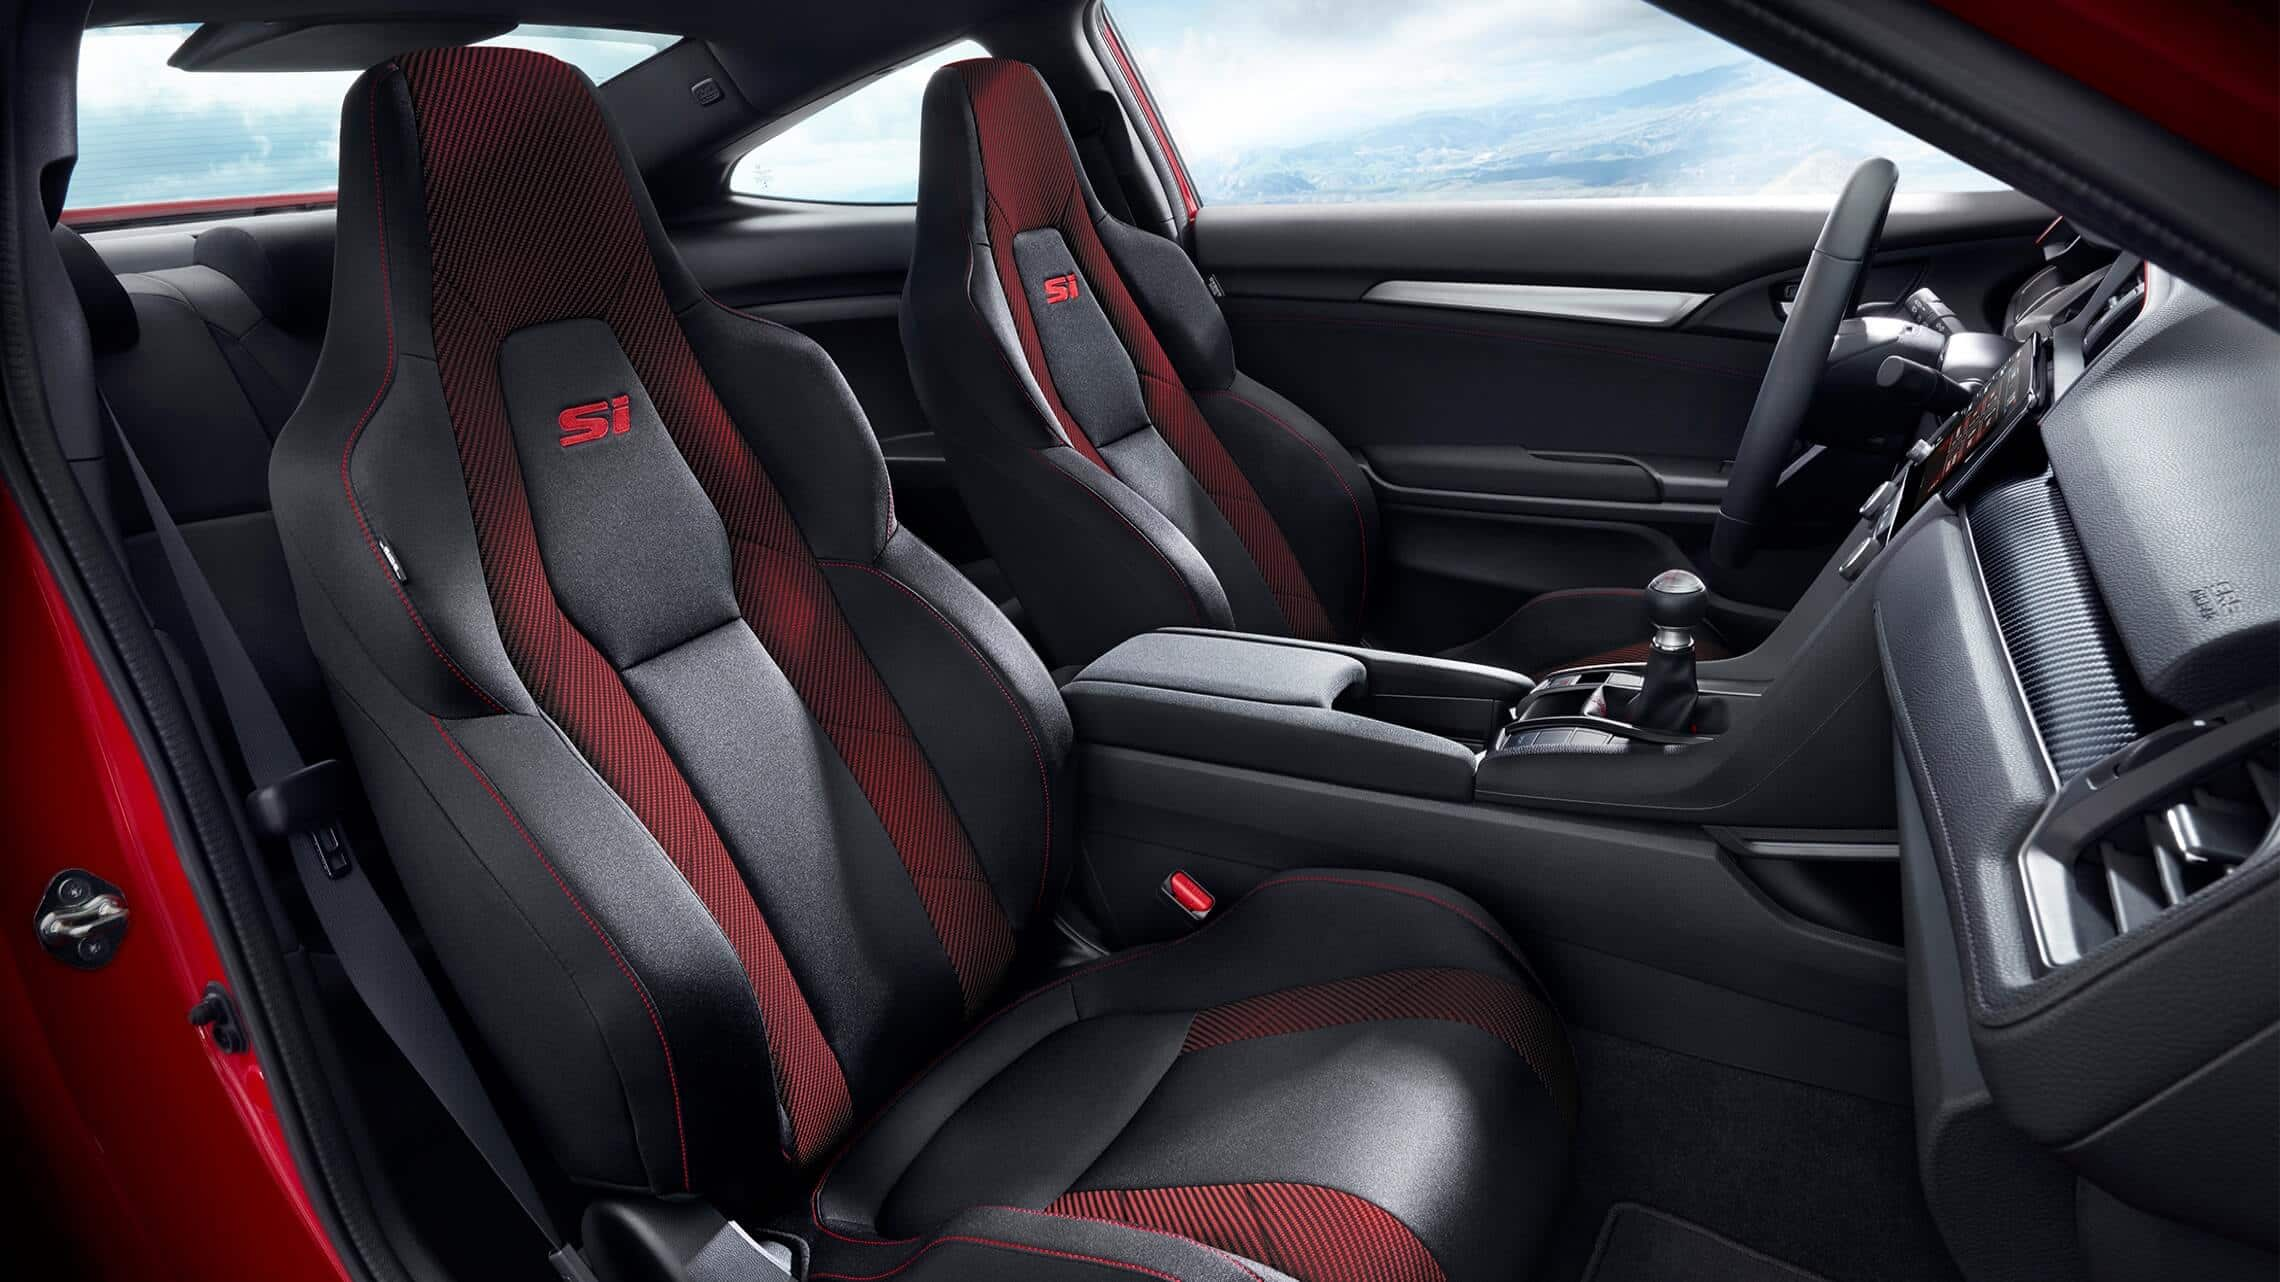 Interior passenger's side view of bolstered front seats in 2020 Honda Civic Si Coupe in Black Cloth with red accents.